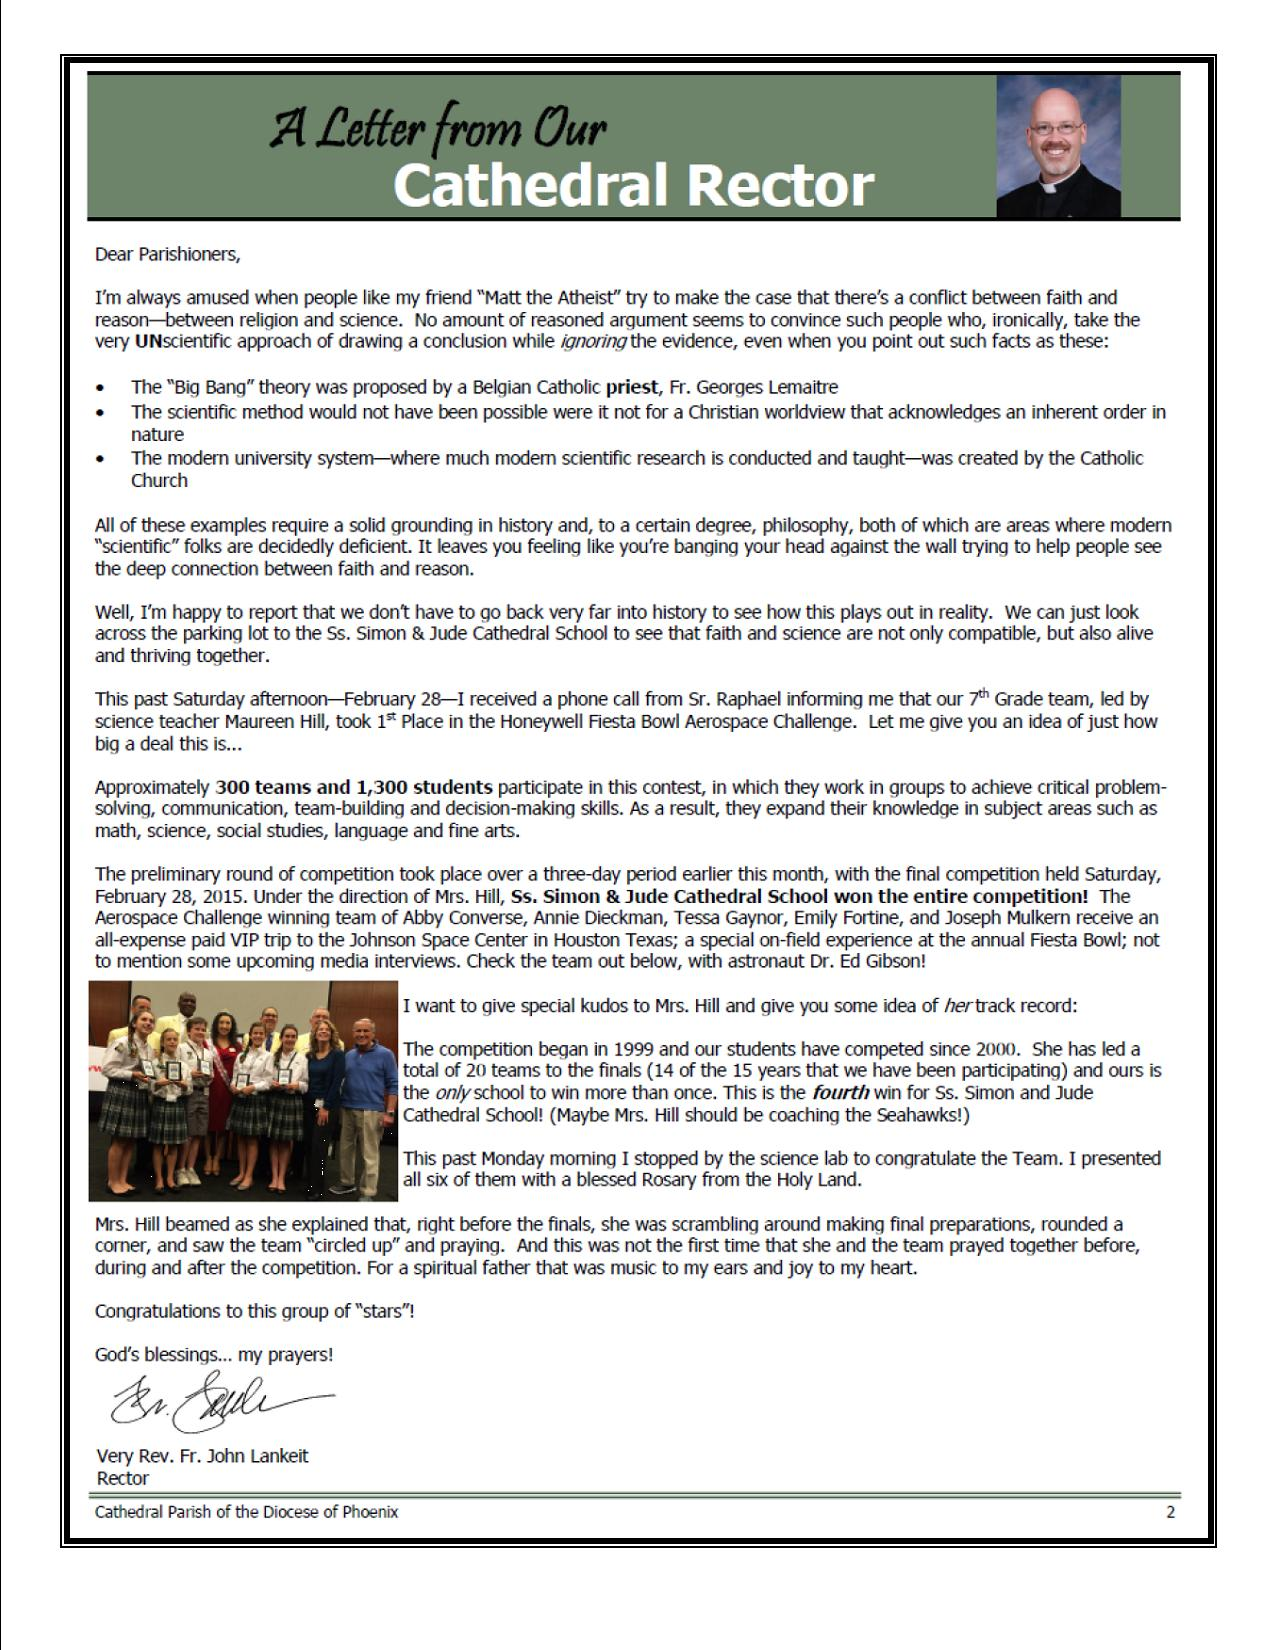 A Letter from Our Cathedral Rector | Ss  Simon & Jude School